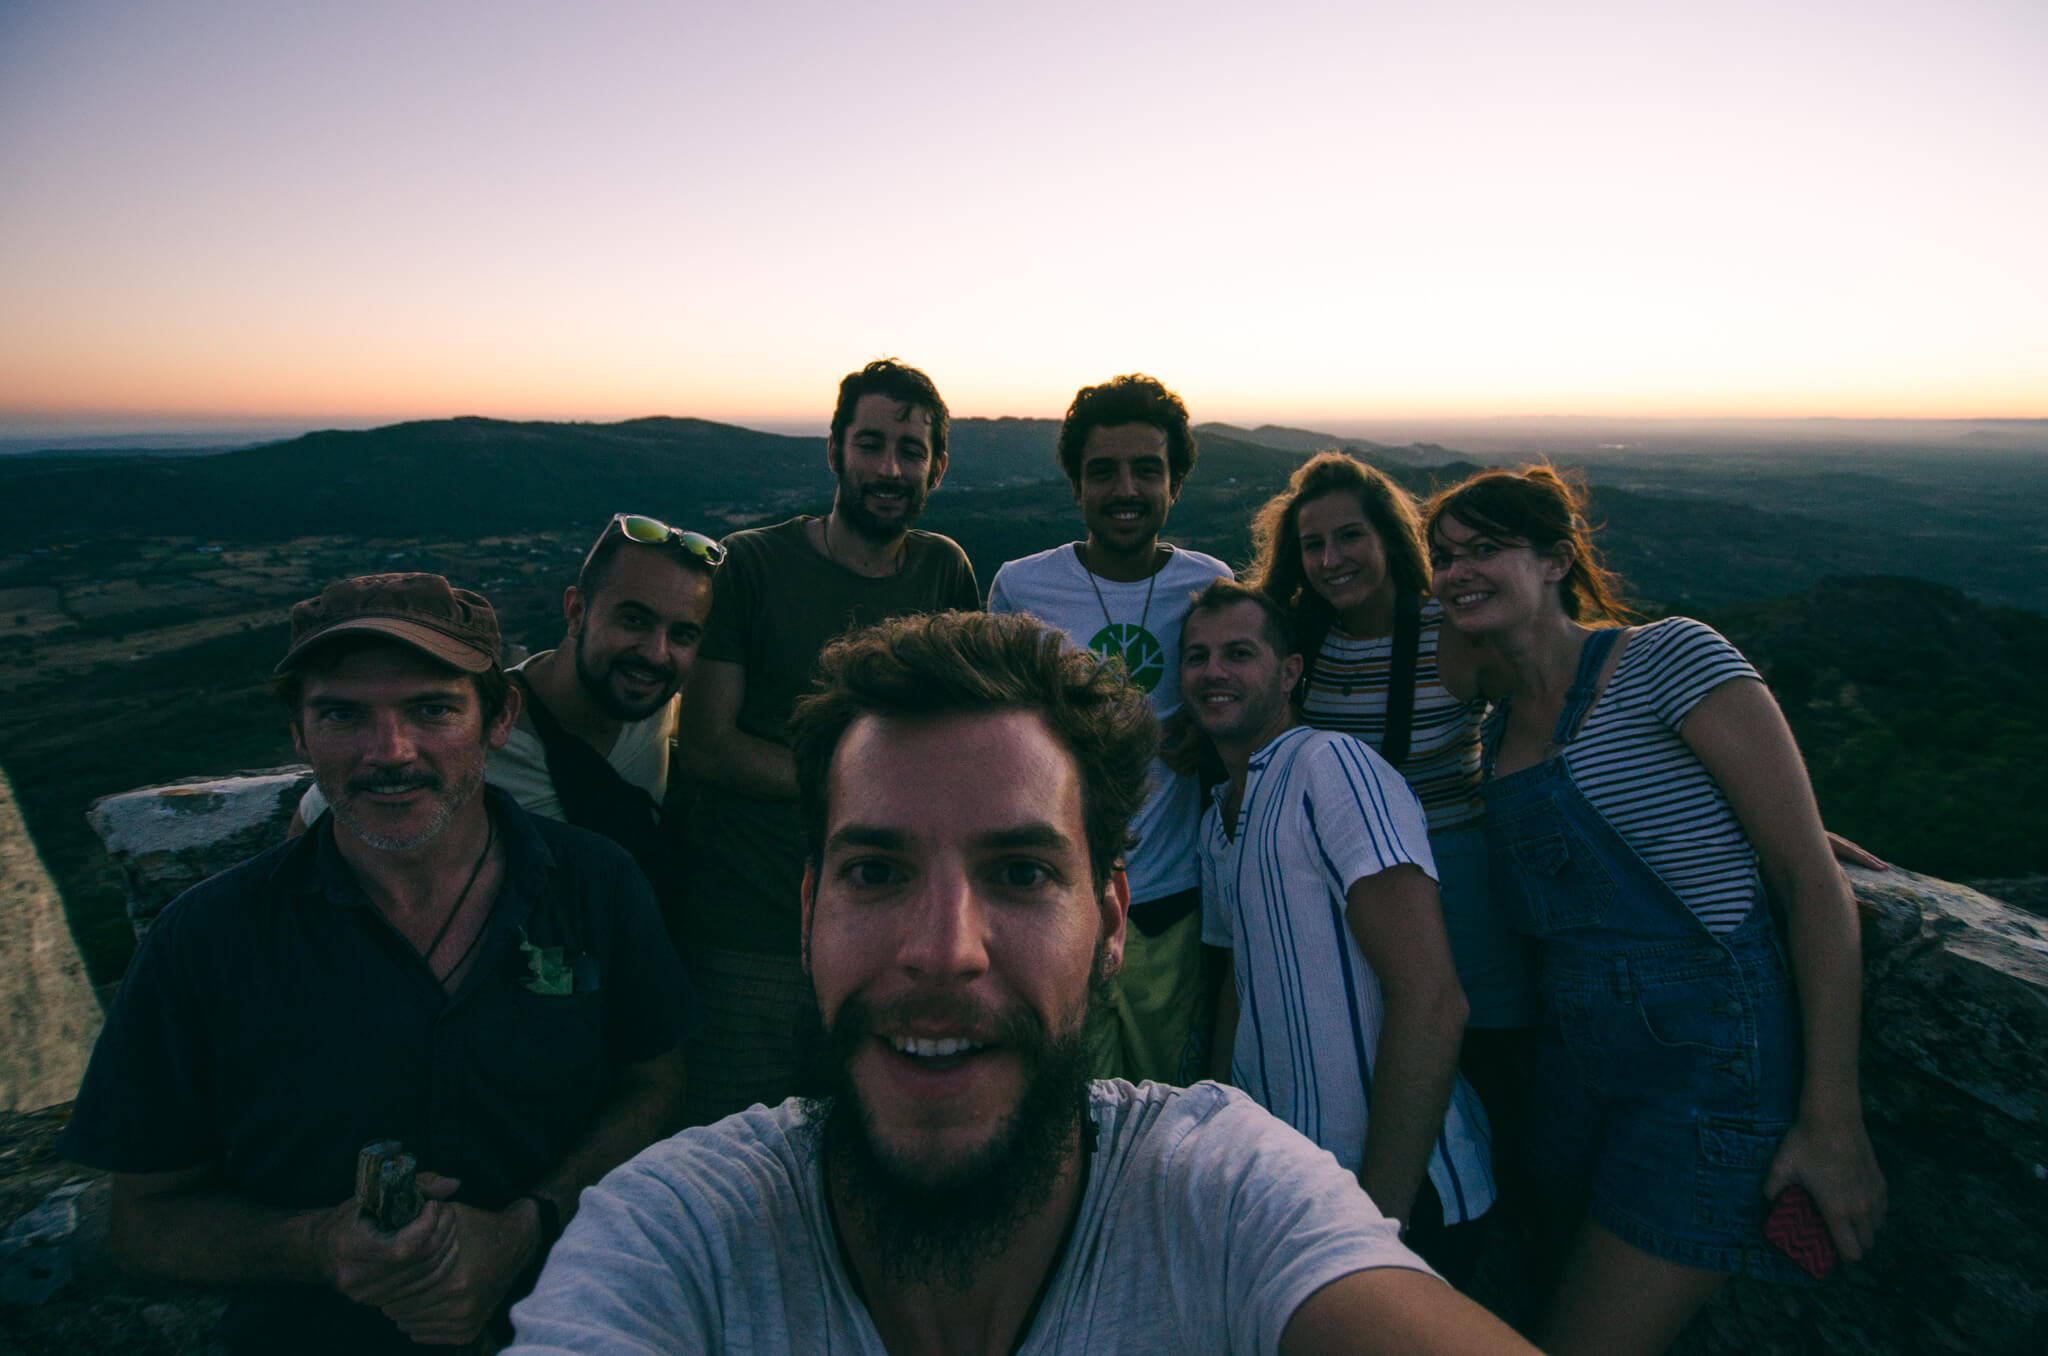 selfie-with-friends-on-a-sunset-breathe-portugal.jpg